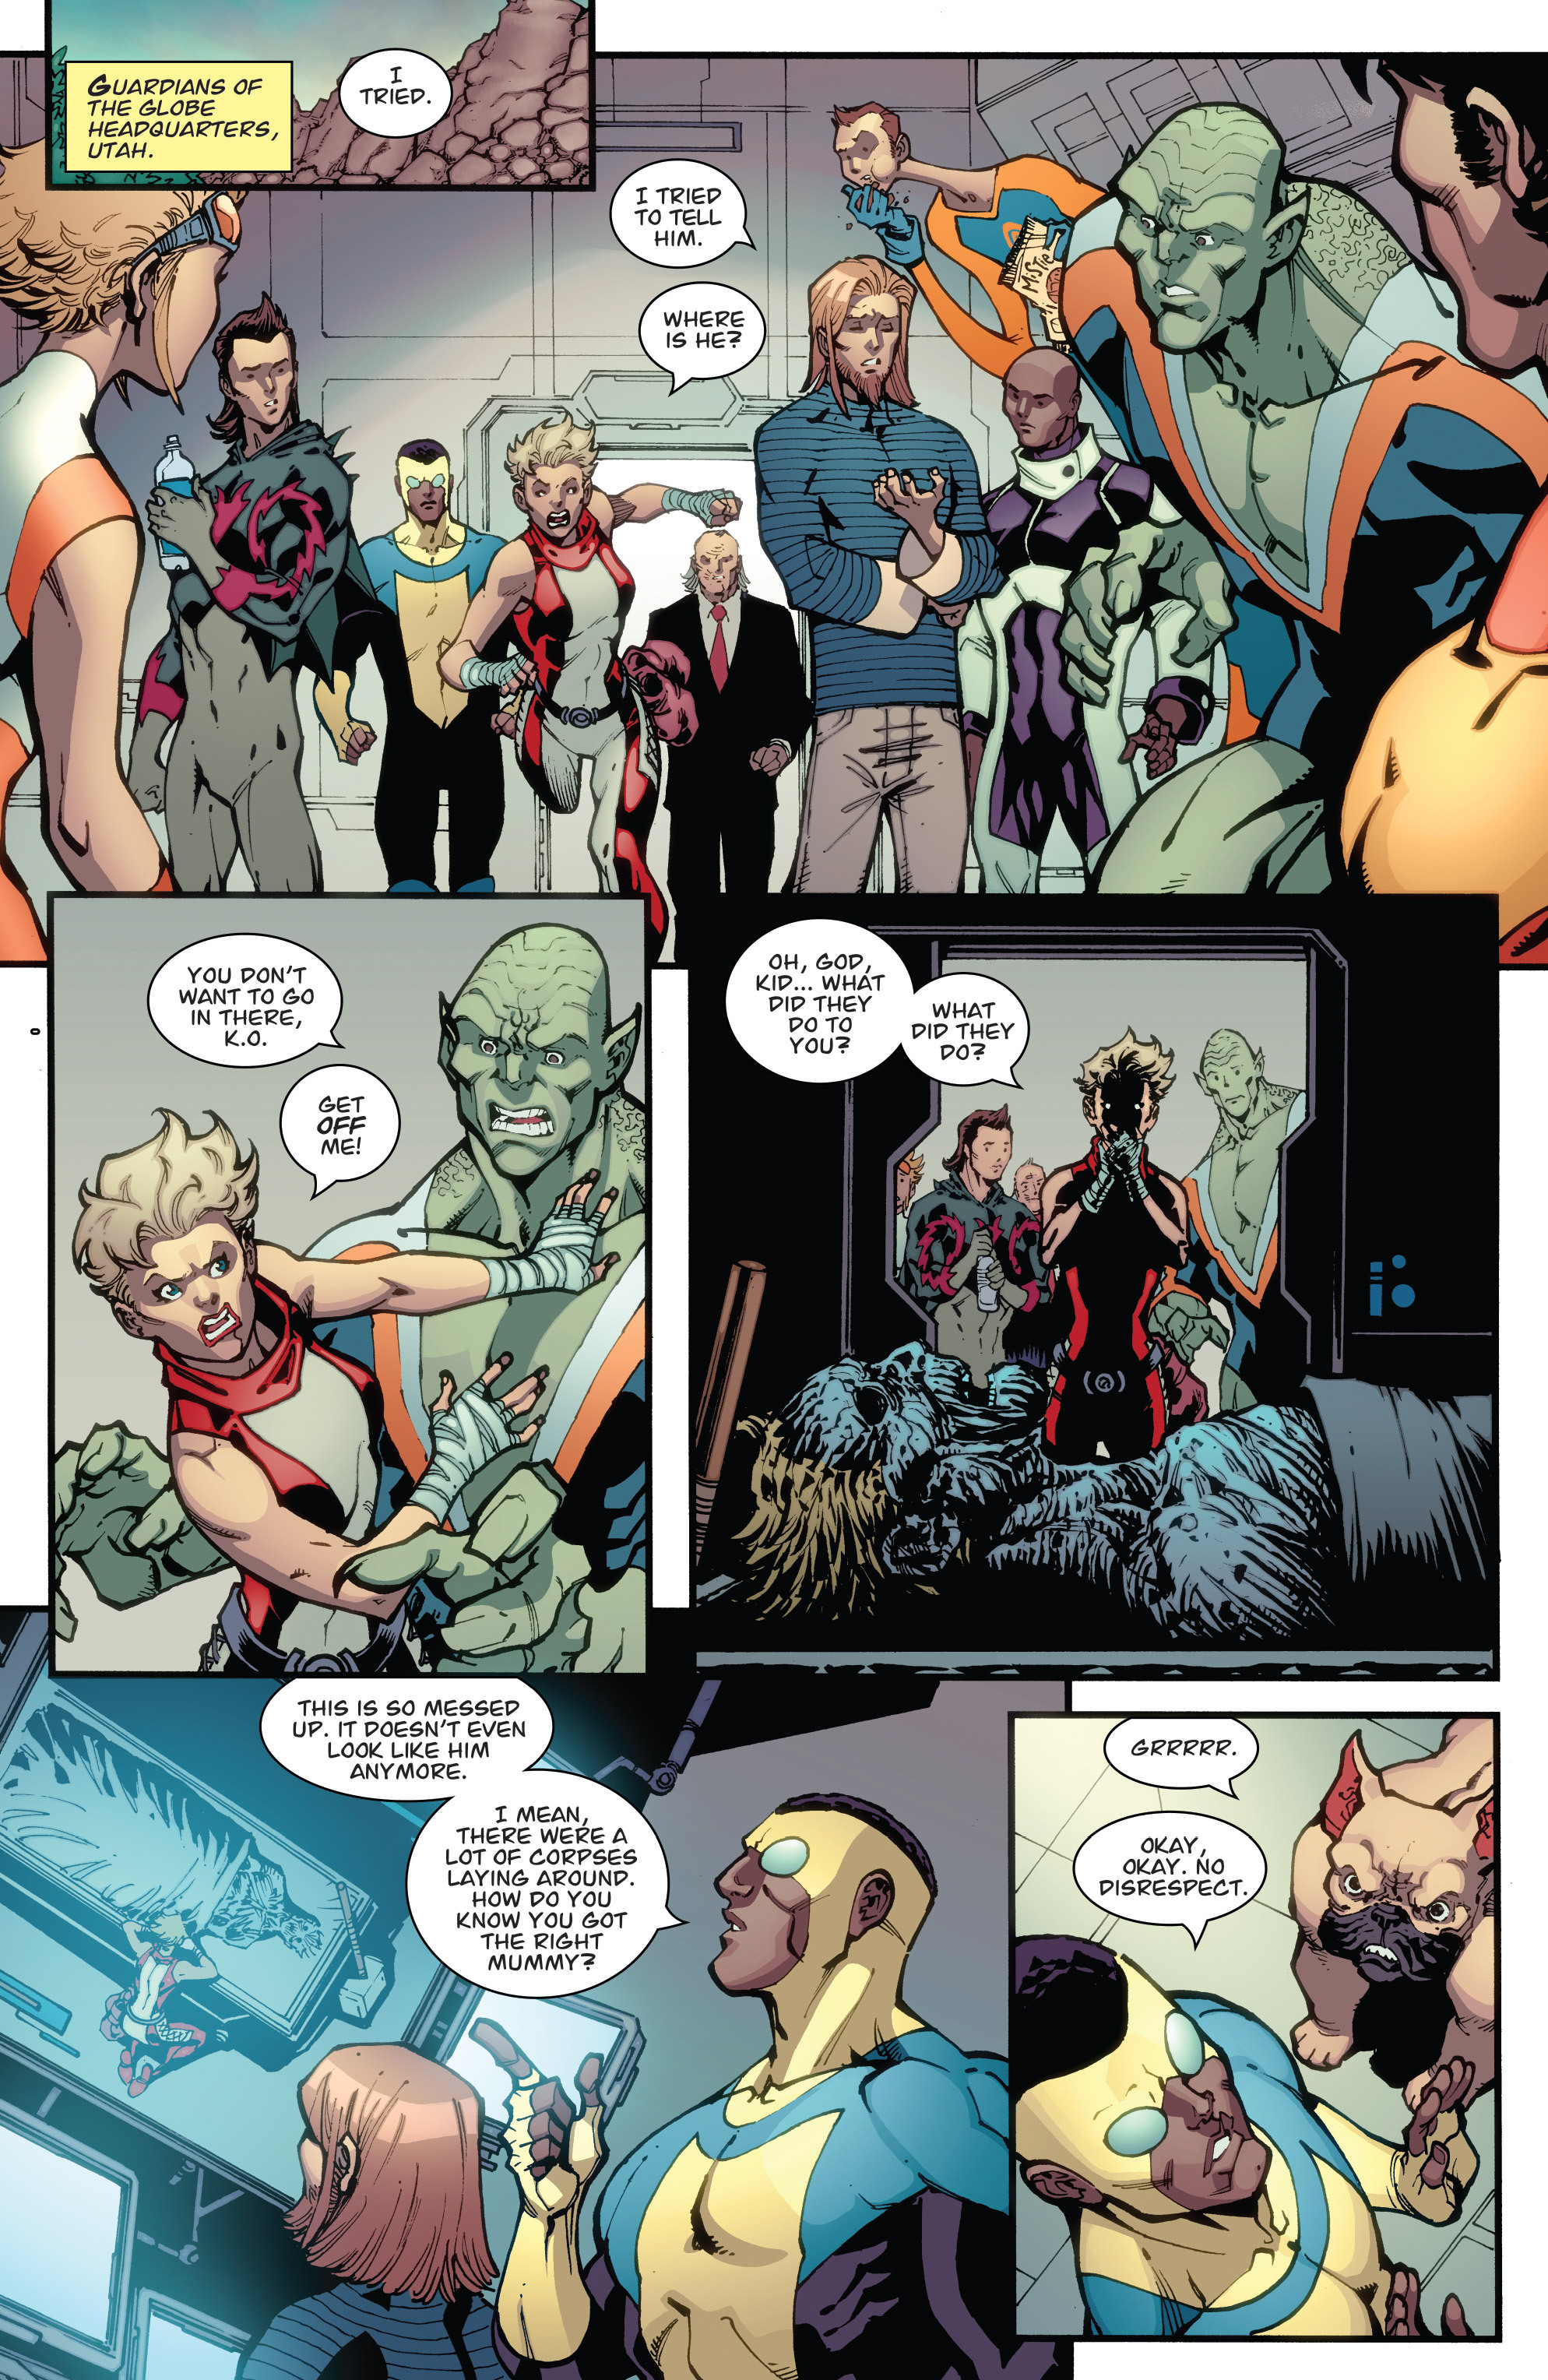 Read online Guarding the Globe (2012) comic -  Issue #6 - 22